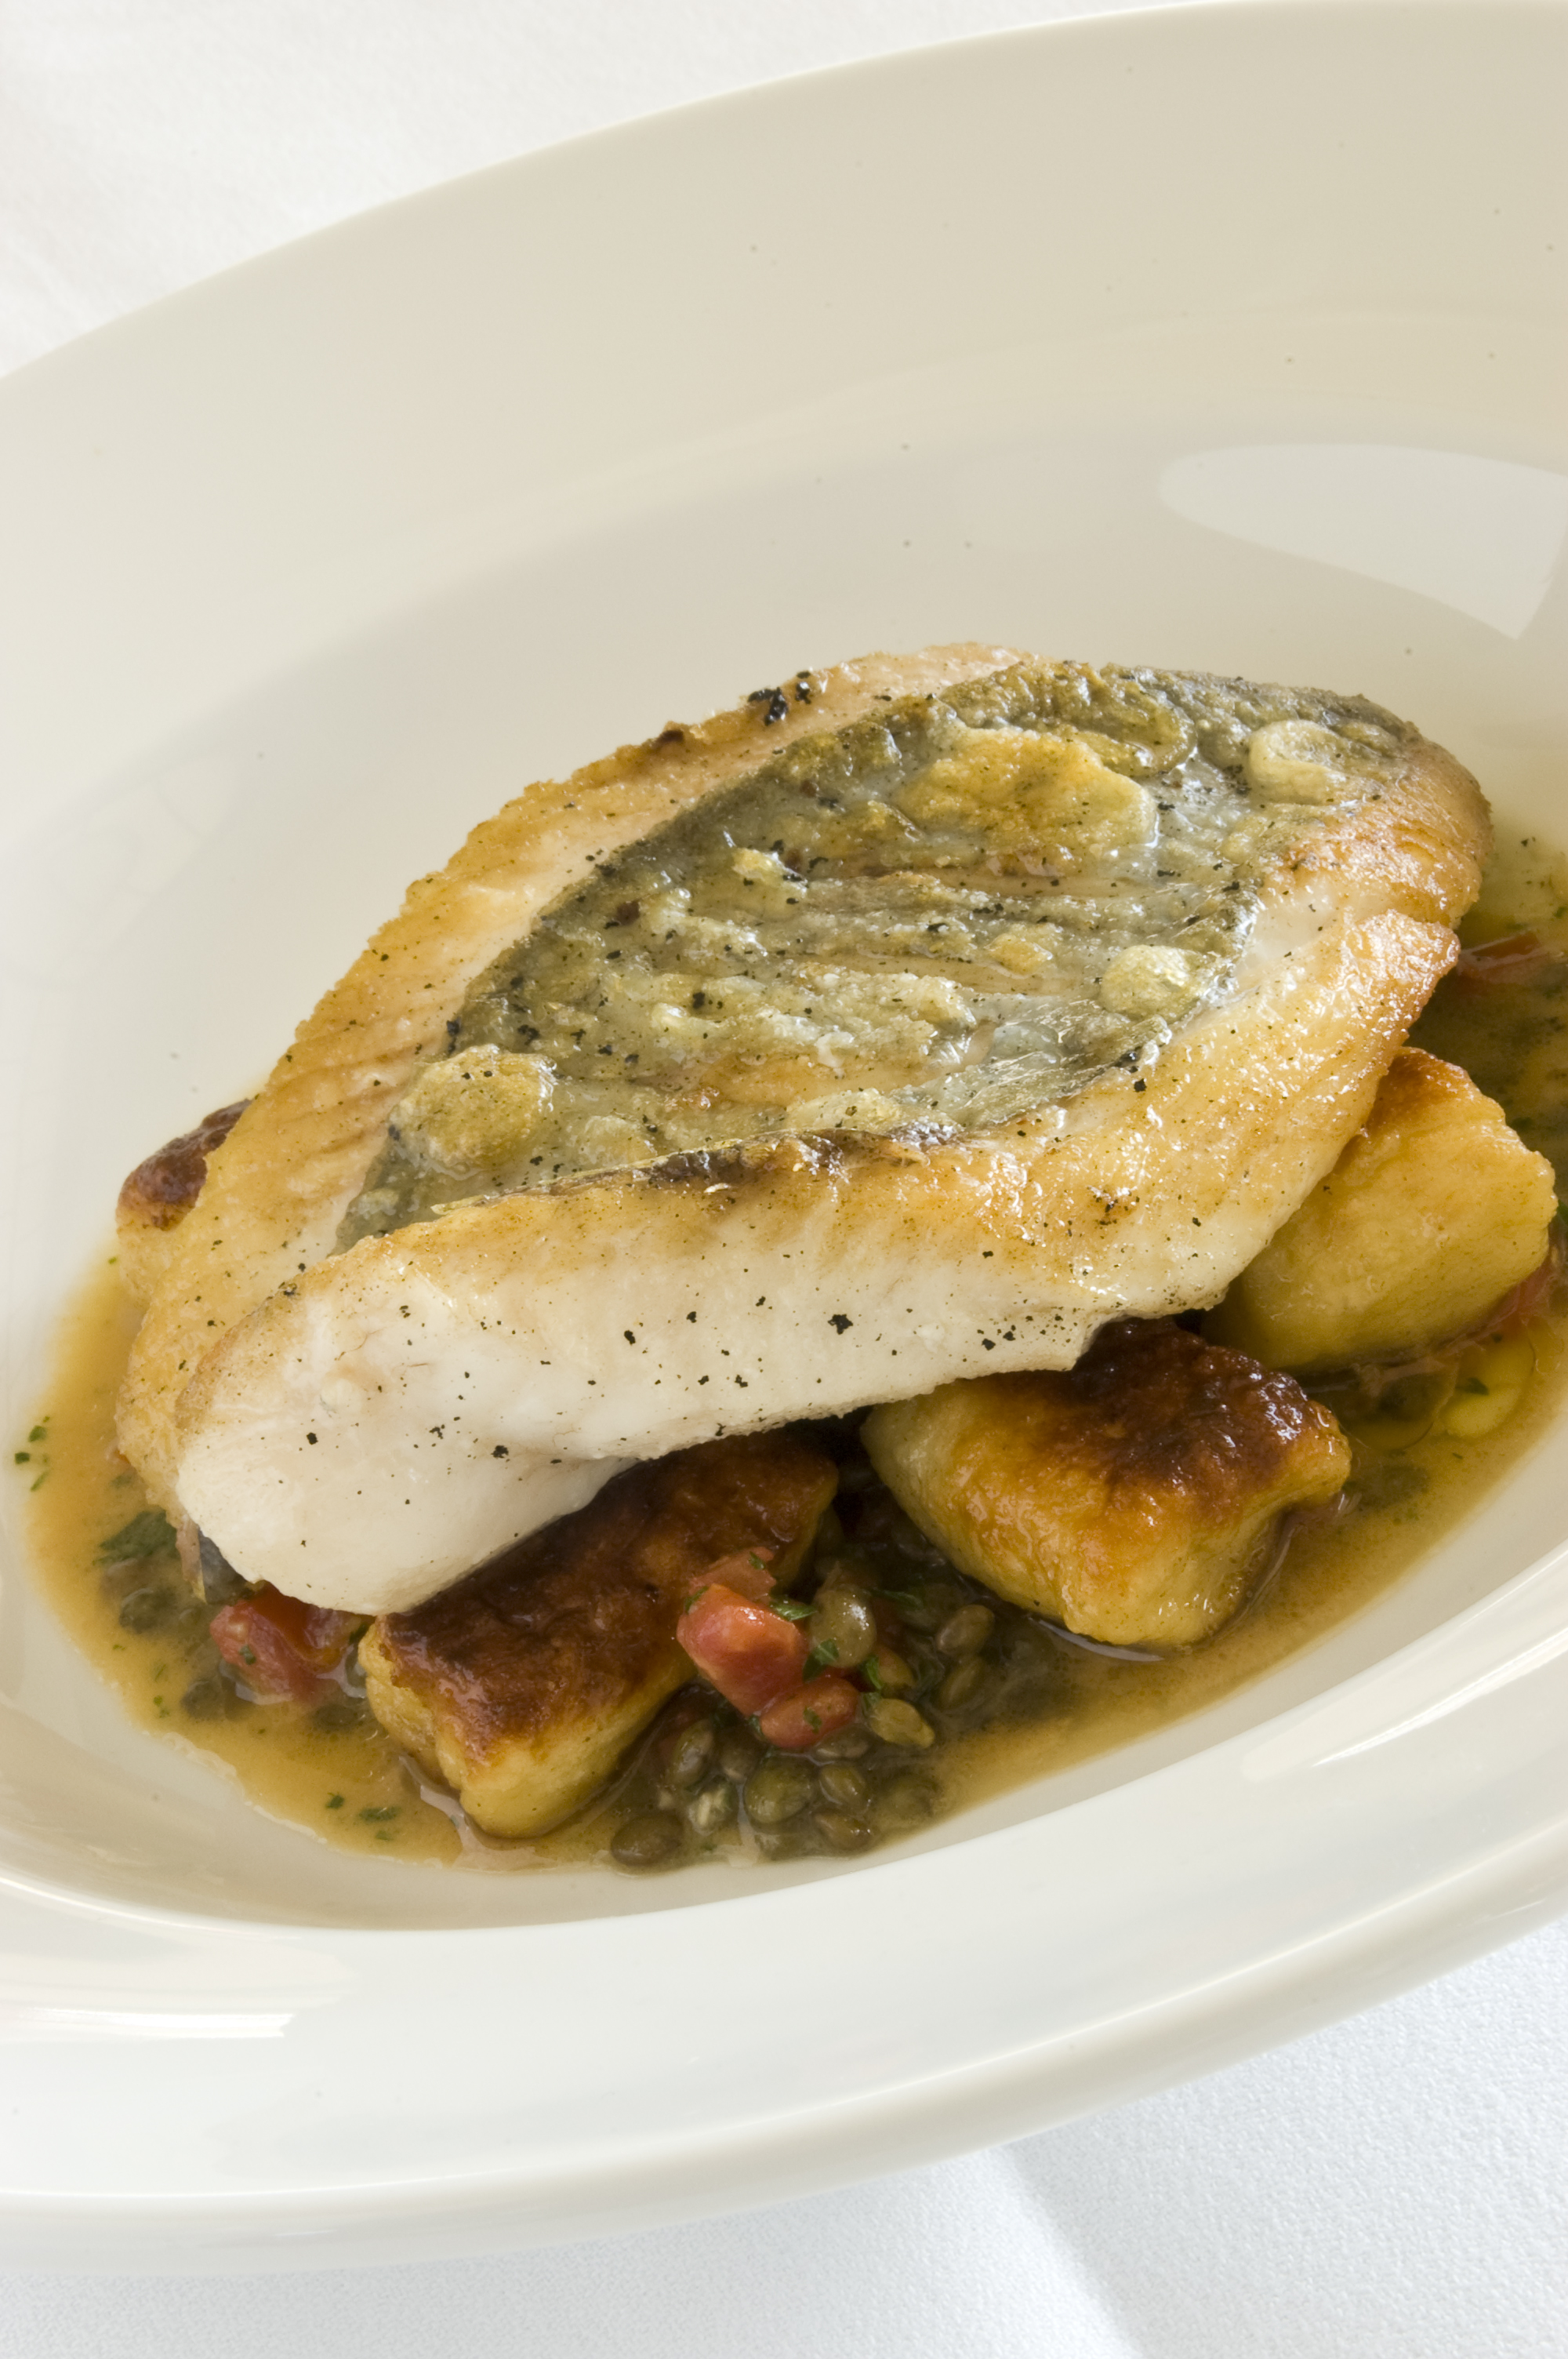 Snapper with gnocchi and lentils